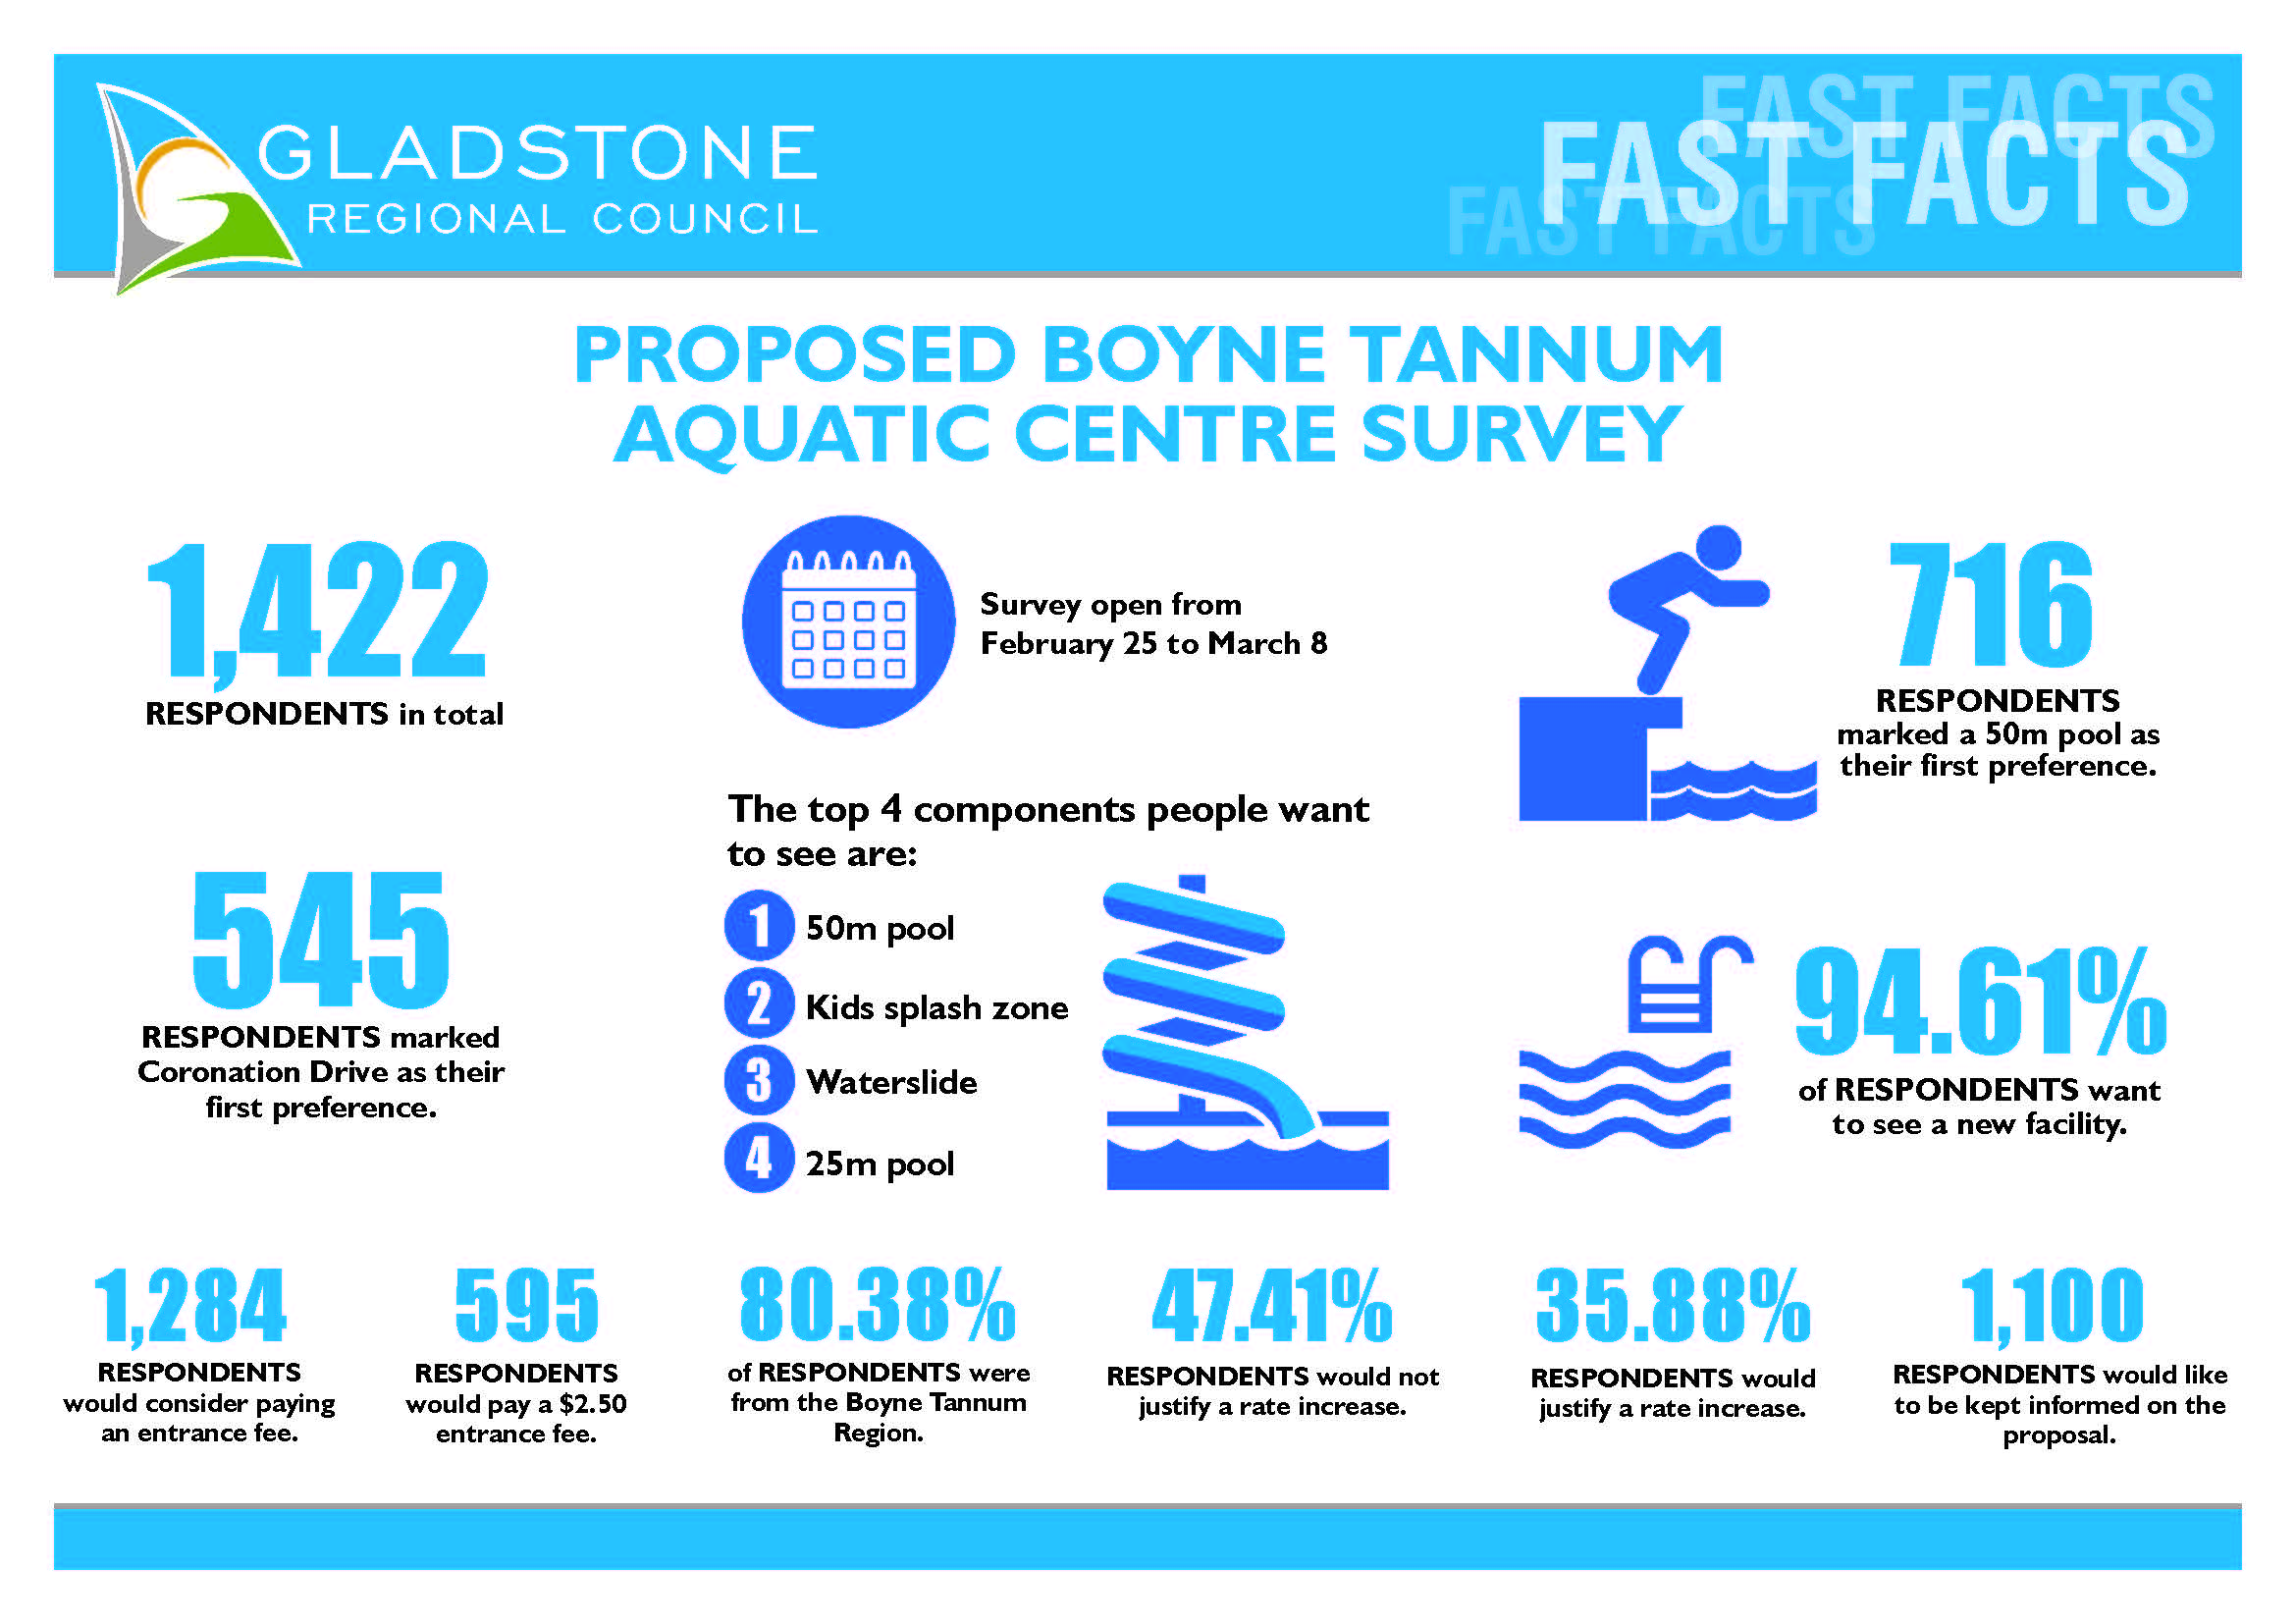 Fast Facts about the Boyne Tannum Aquatic Recreation Centre